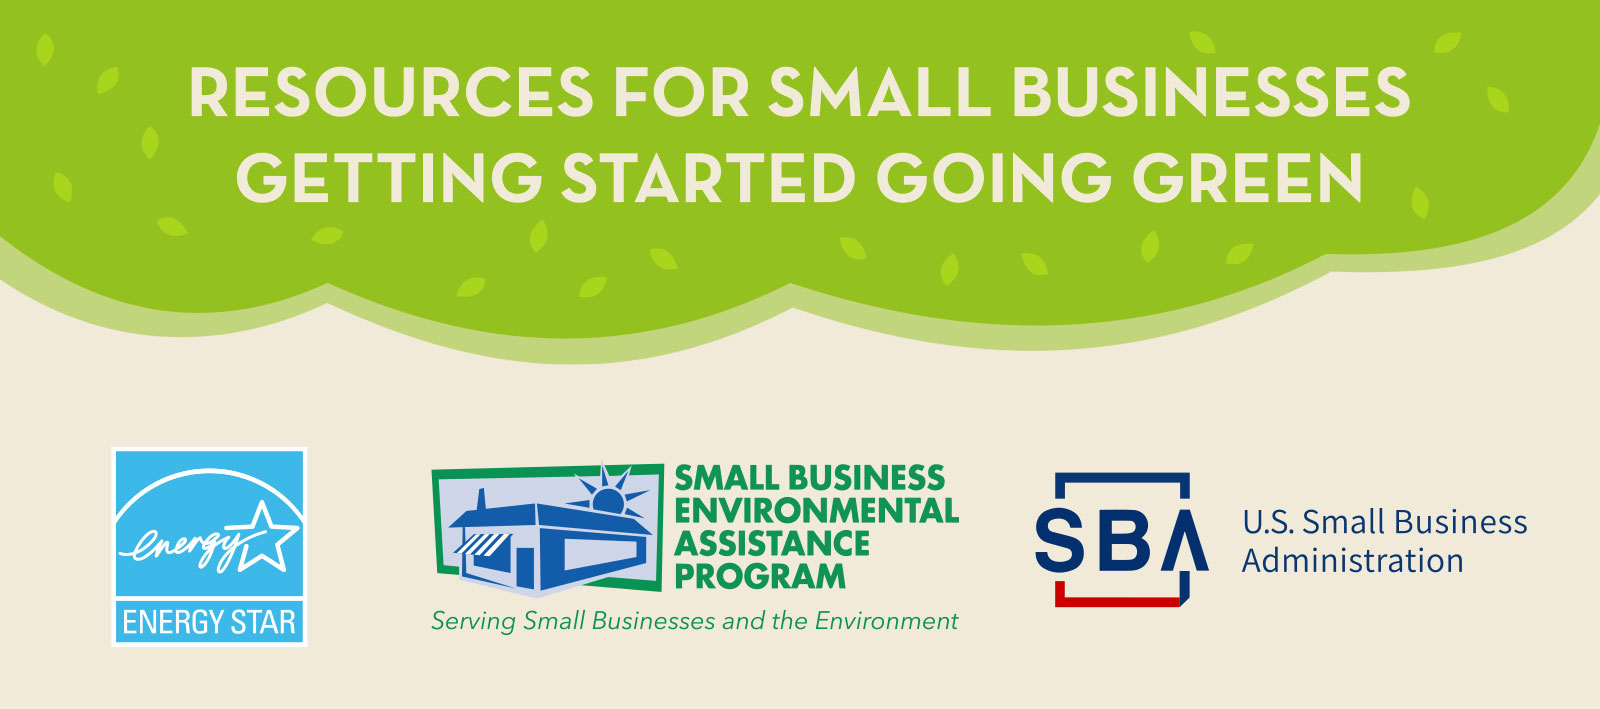 Green Business Resources Infographic